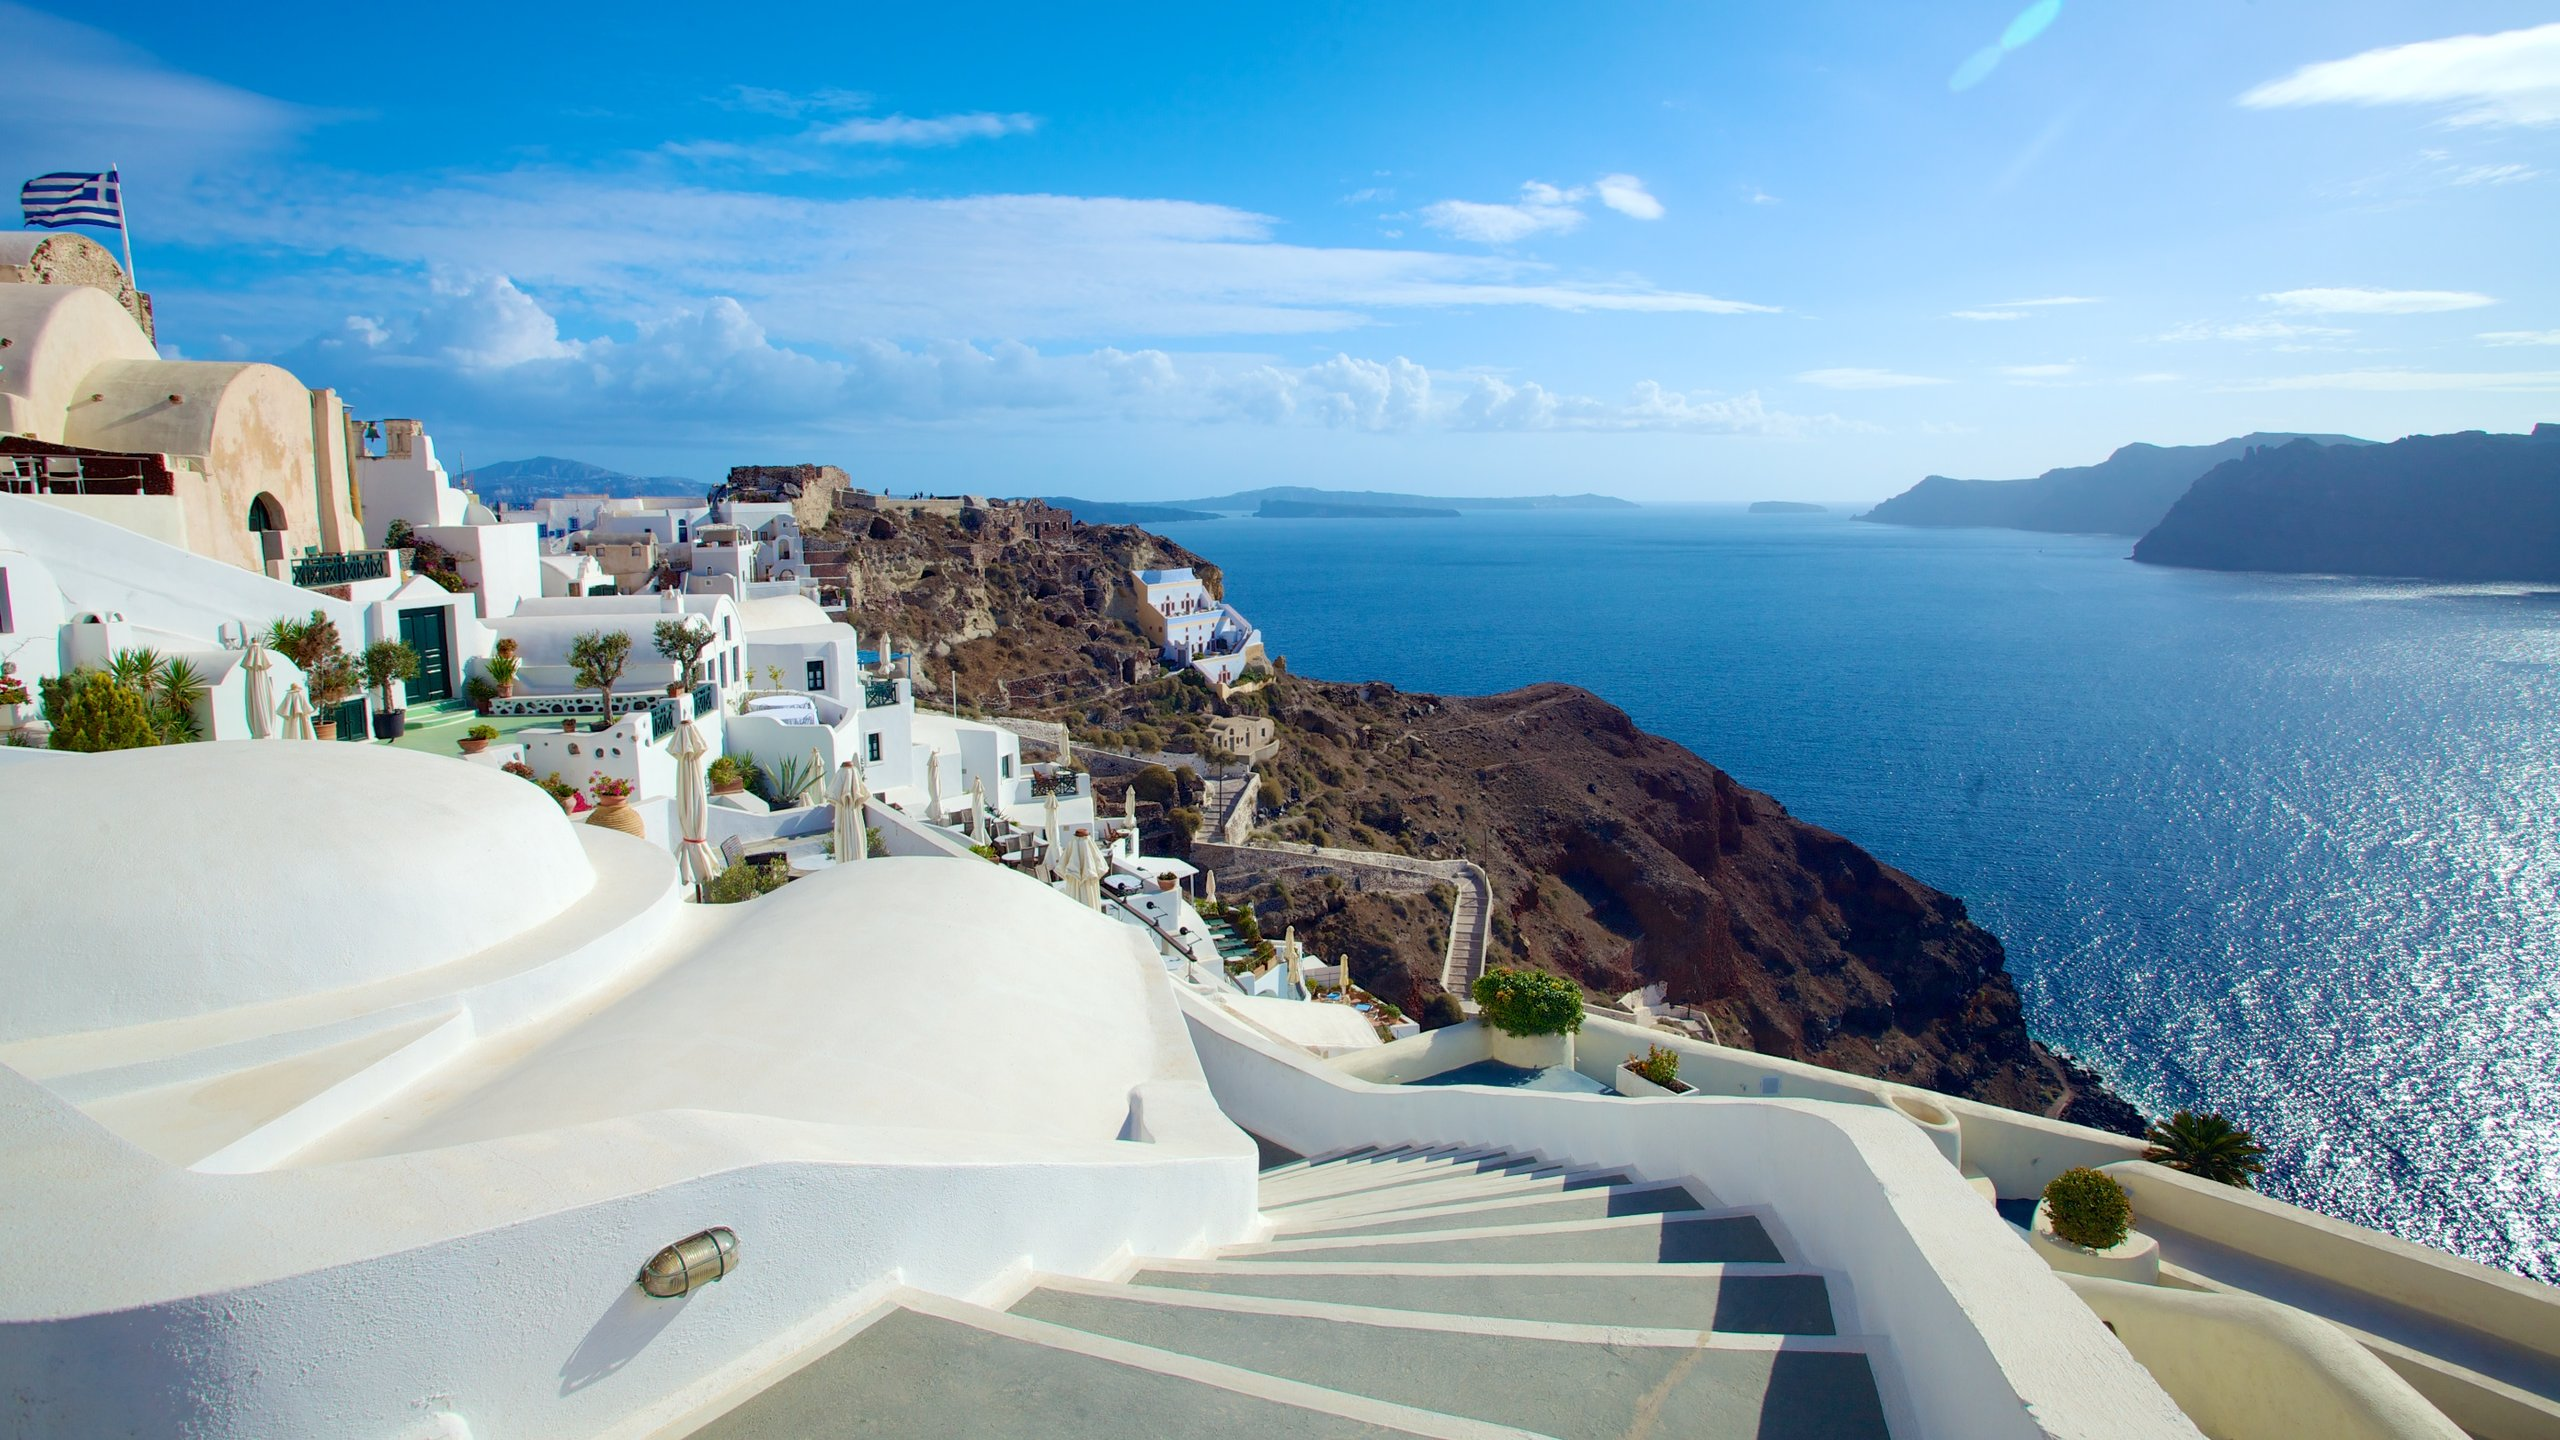 All inclusivehotell i Santorini  Expediase